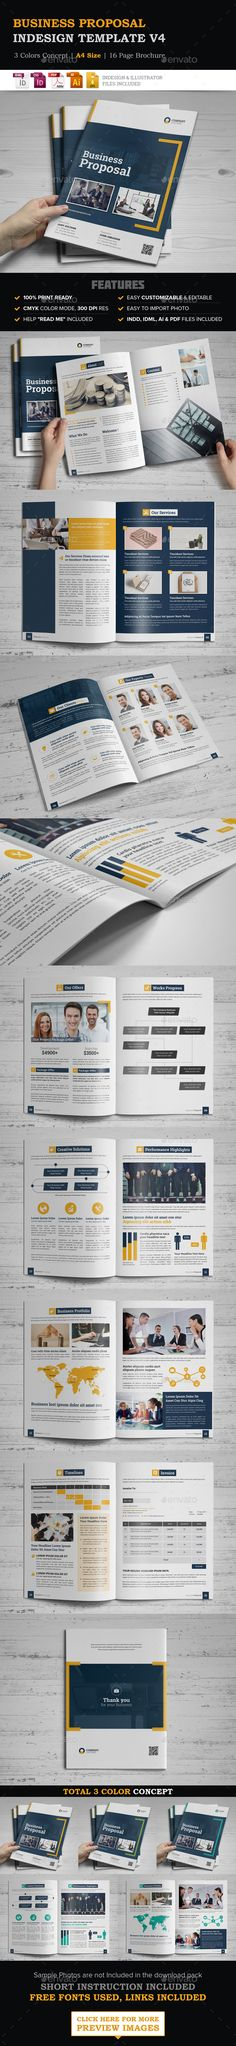 Business Proposal Indesign Template Business proposal, Indesign - event proposal template